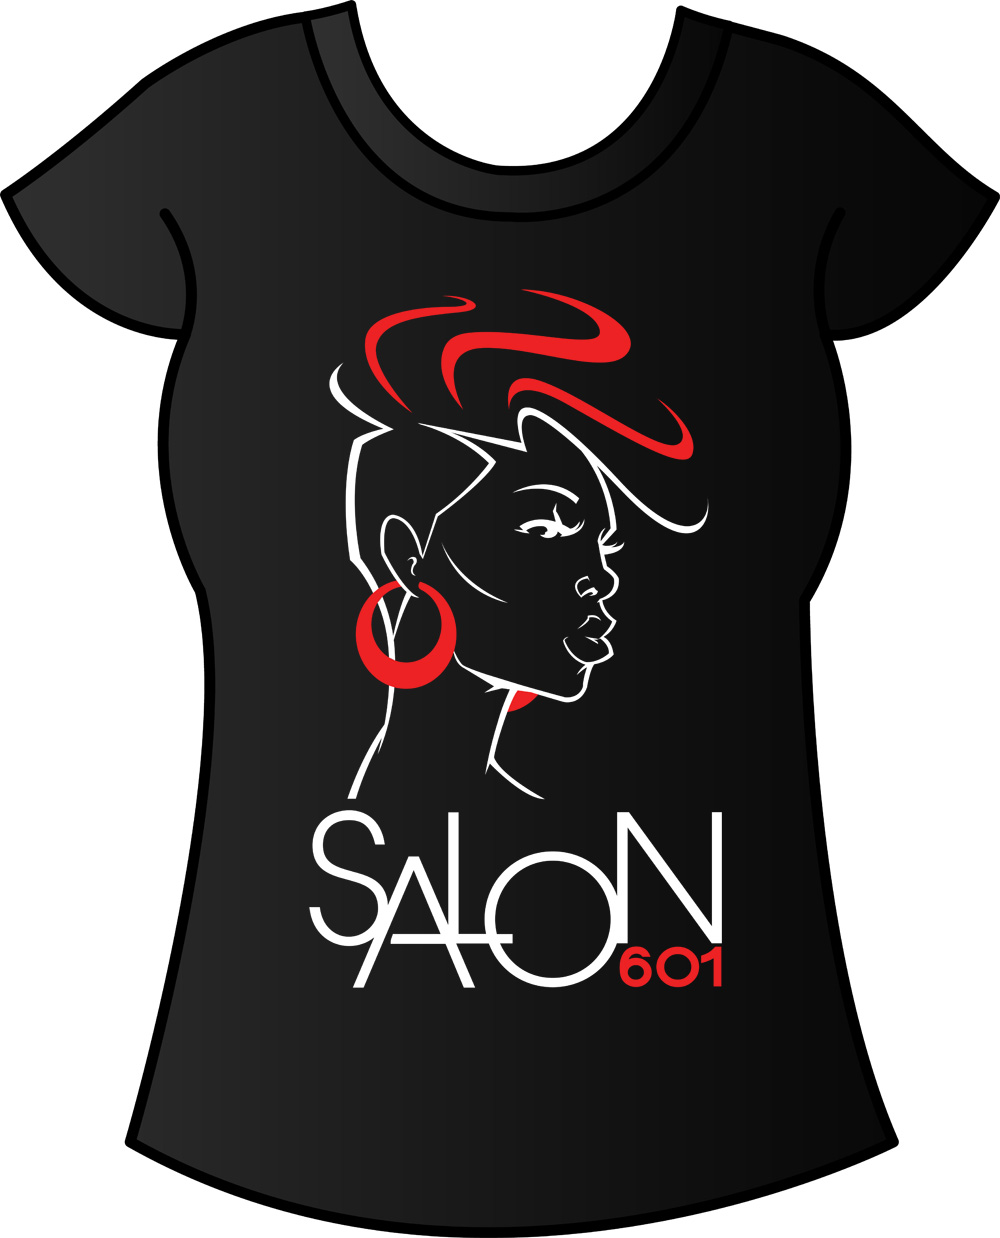 Salon 601 logo design on shirt